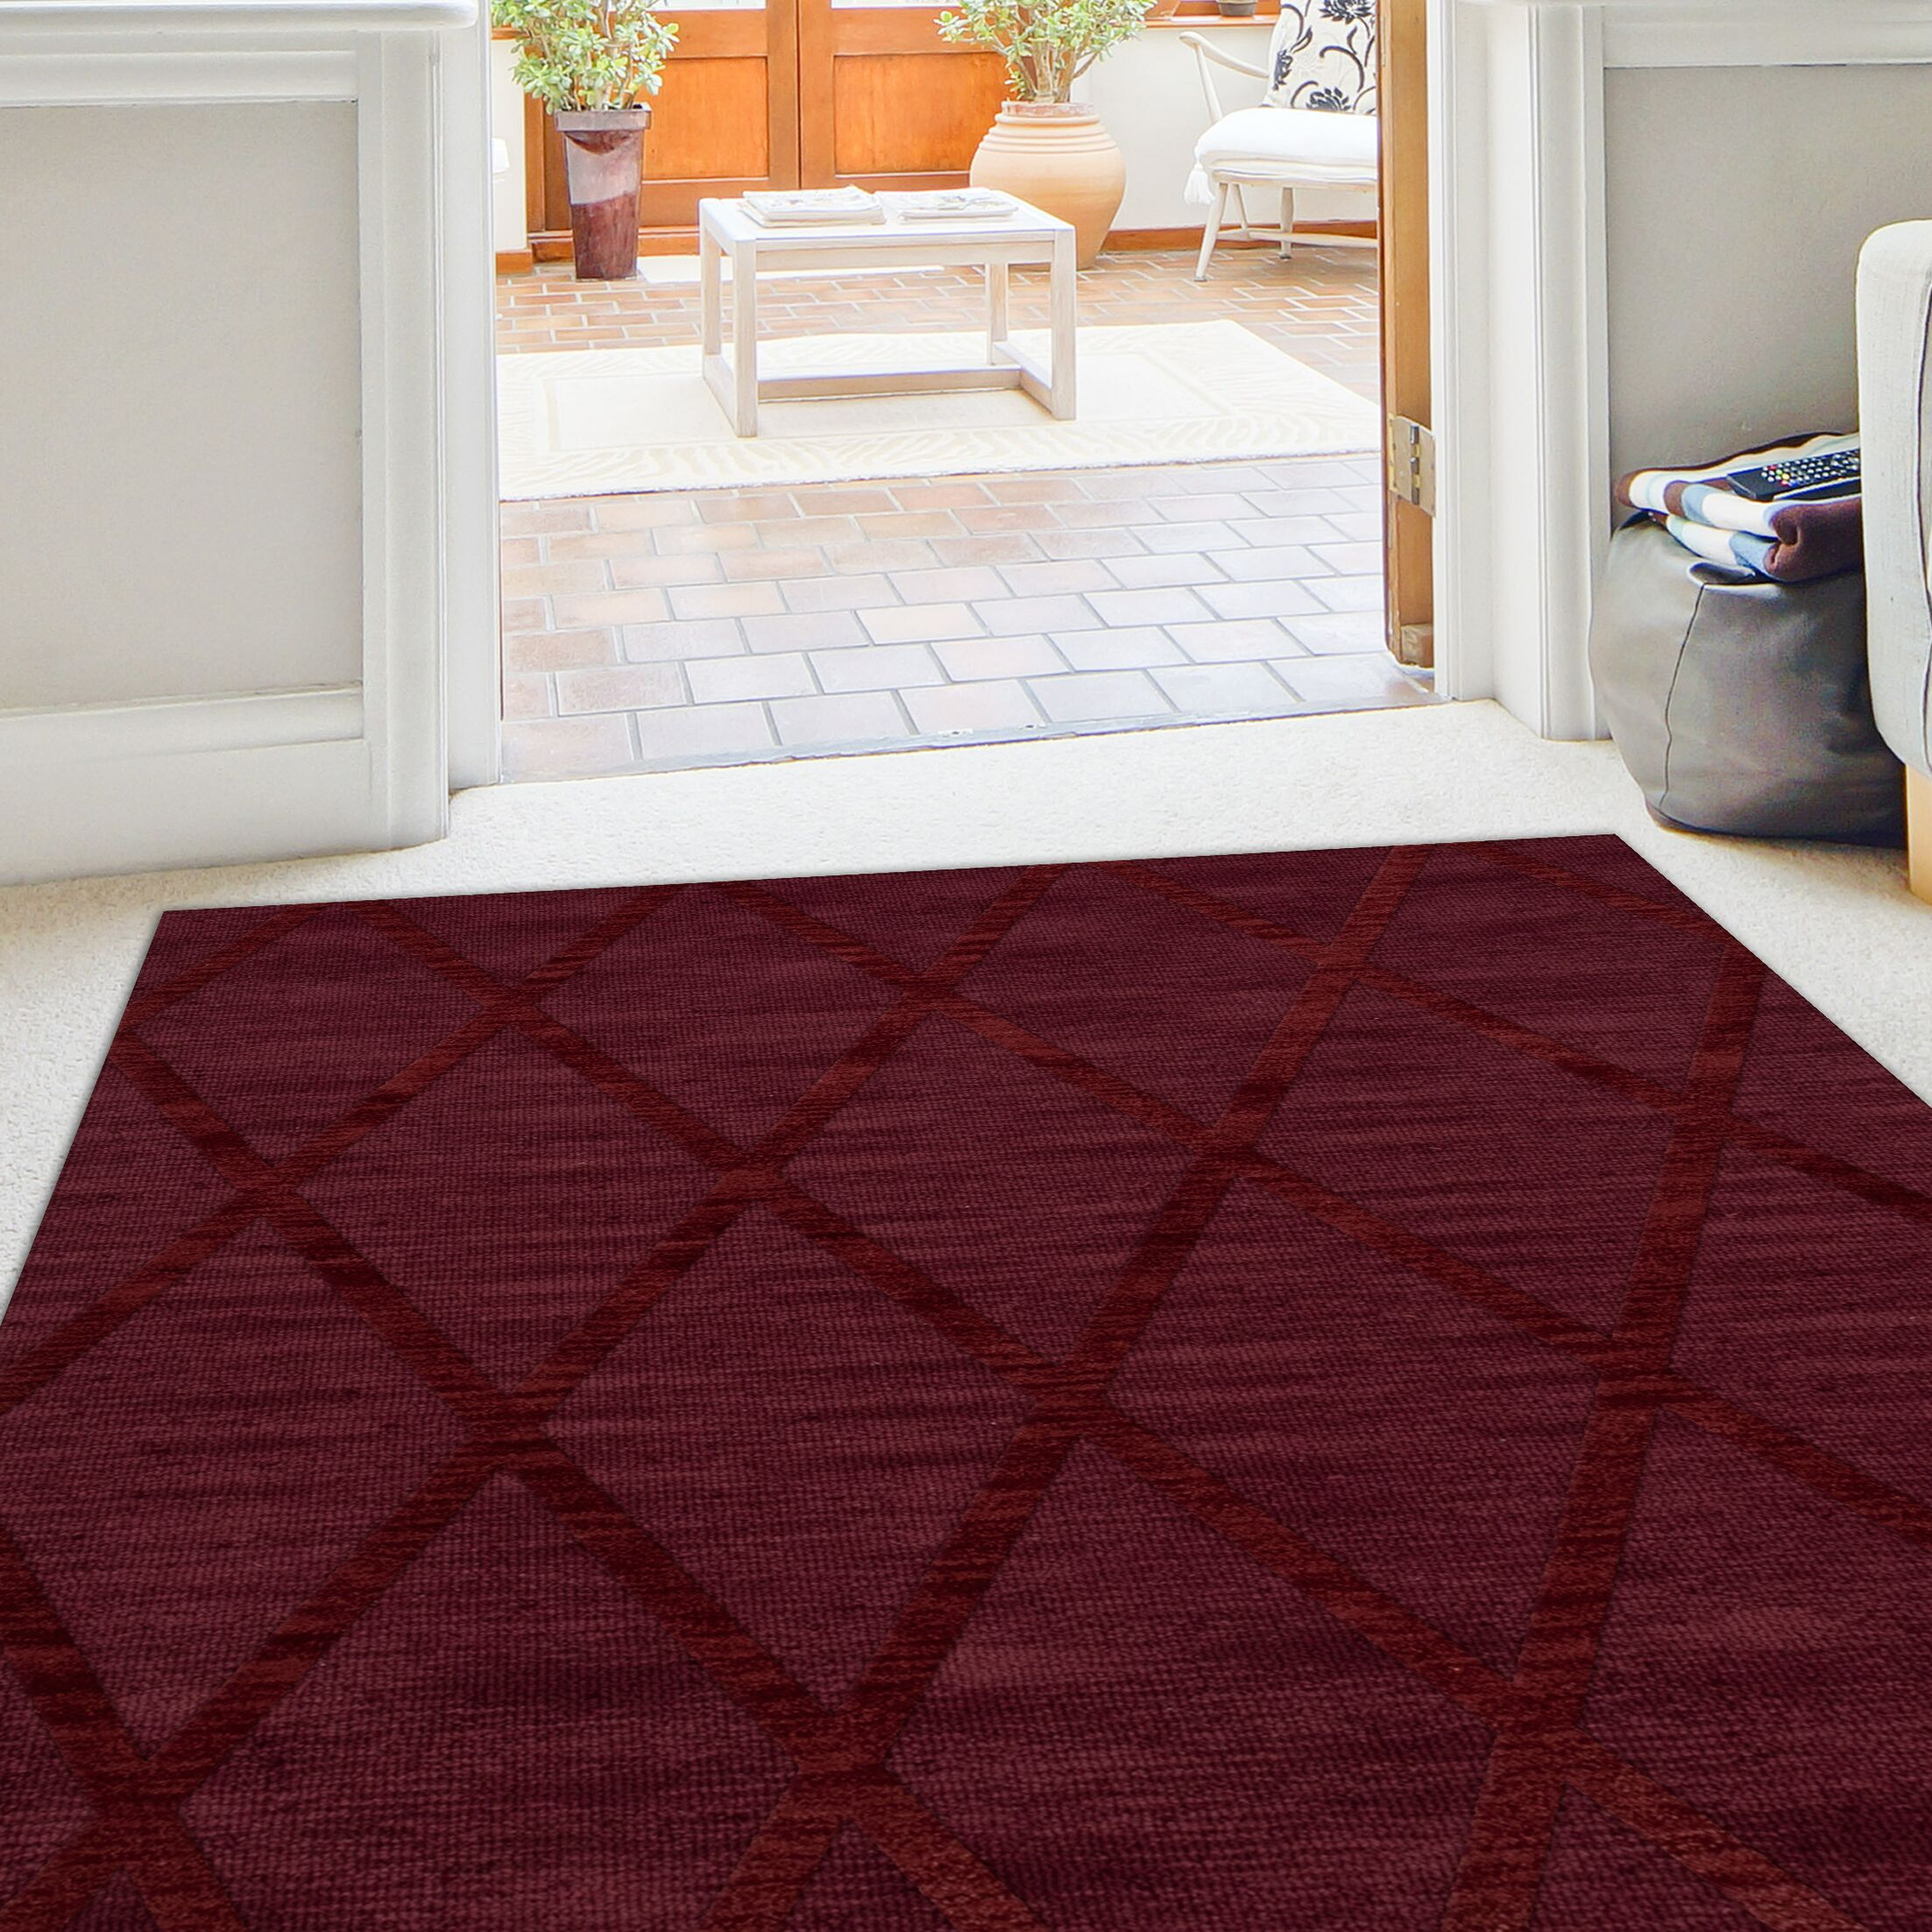 Dover Tufted Wool Burgundy Area Rug Rug Size: Octagon 10'